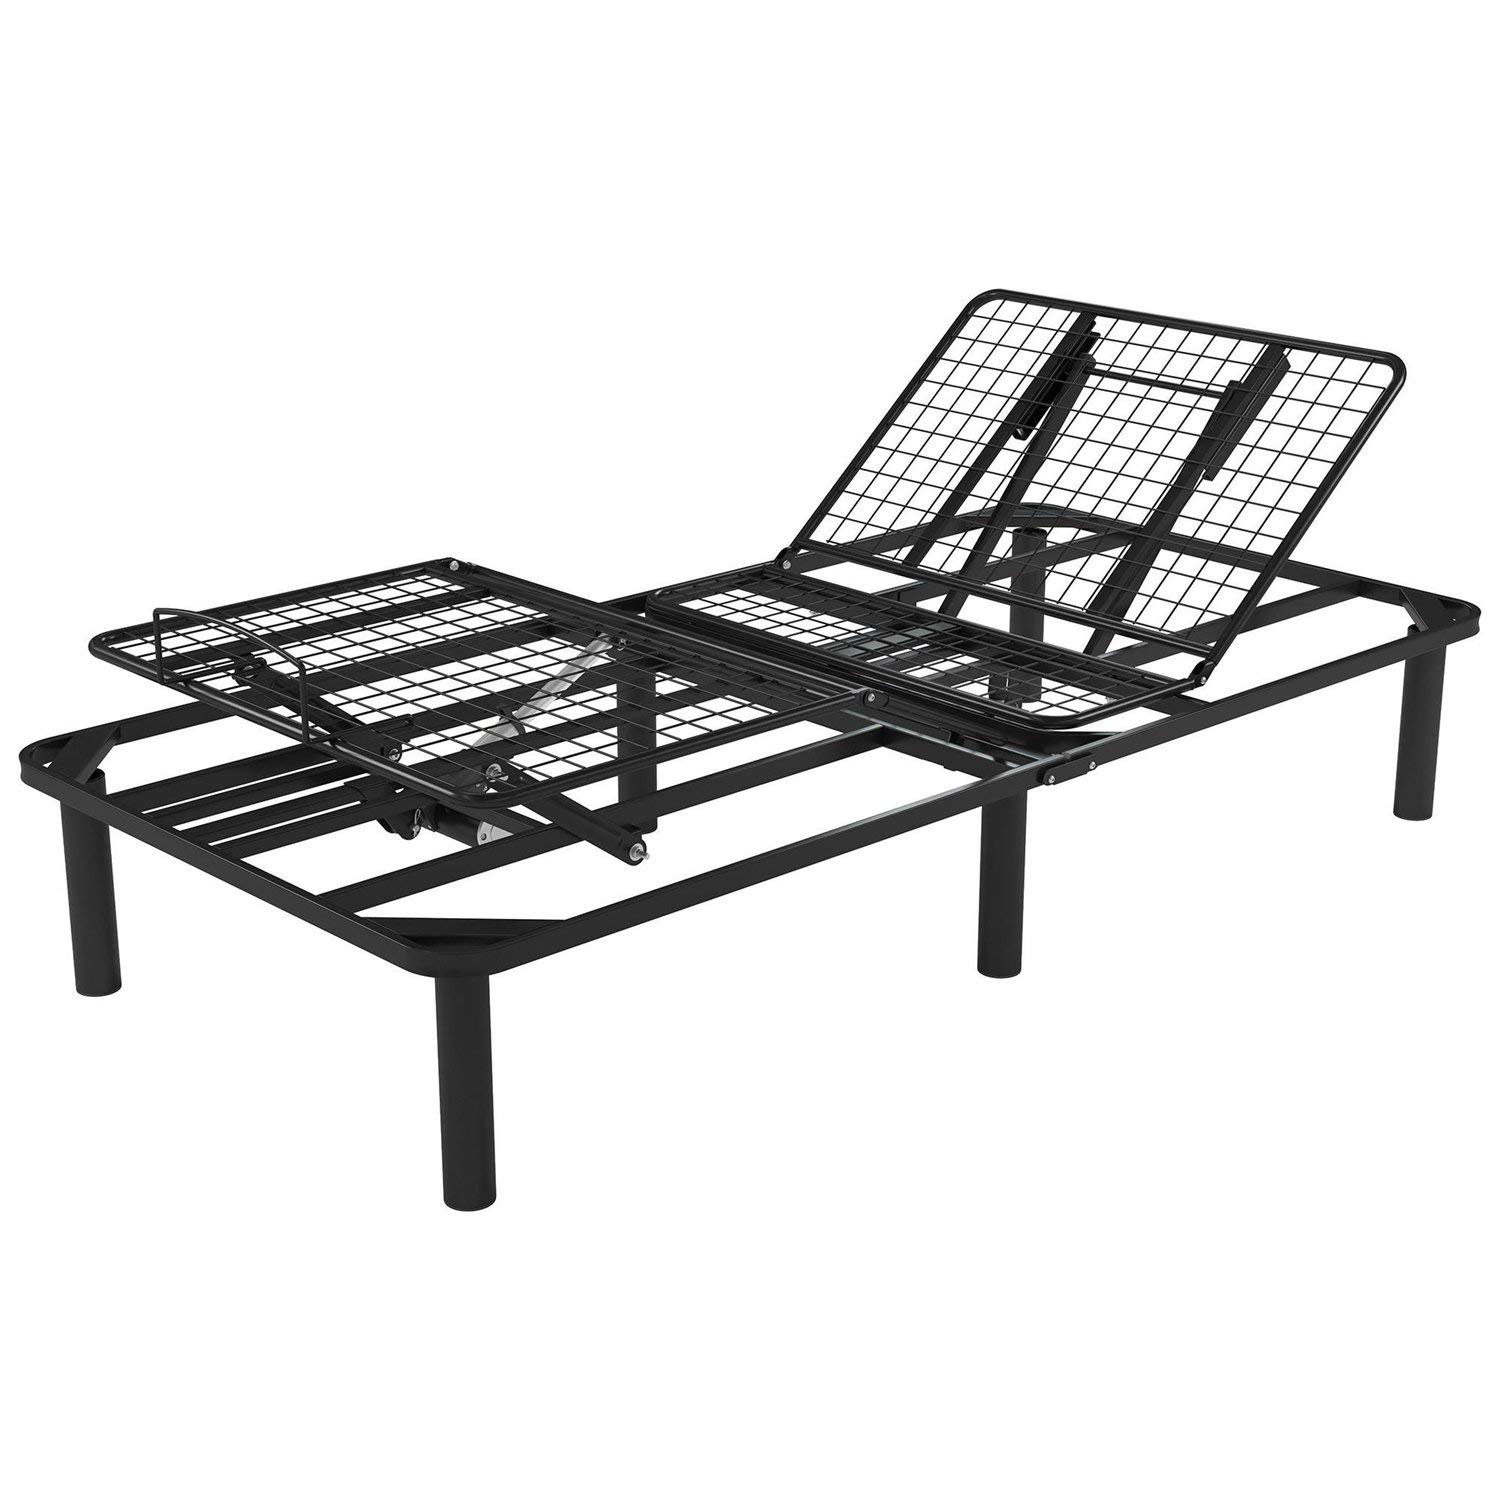 StarSun Depot Twin XL Electric Adjustable Bed Frame Base with Remote